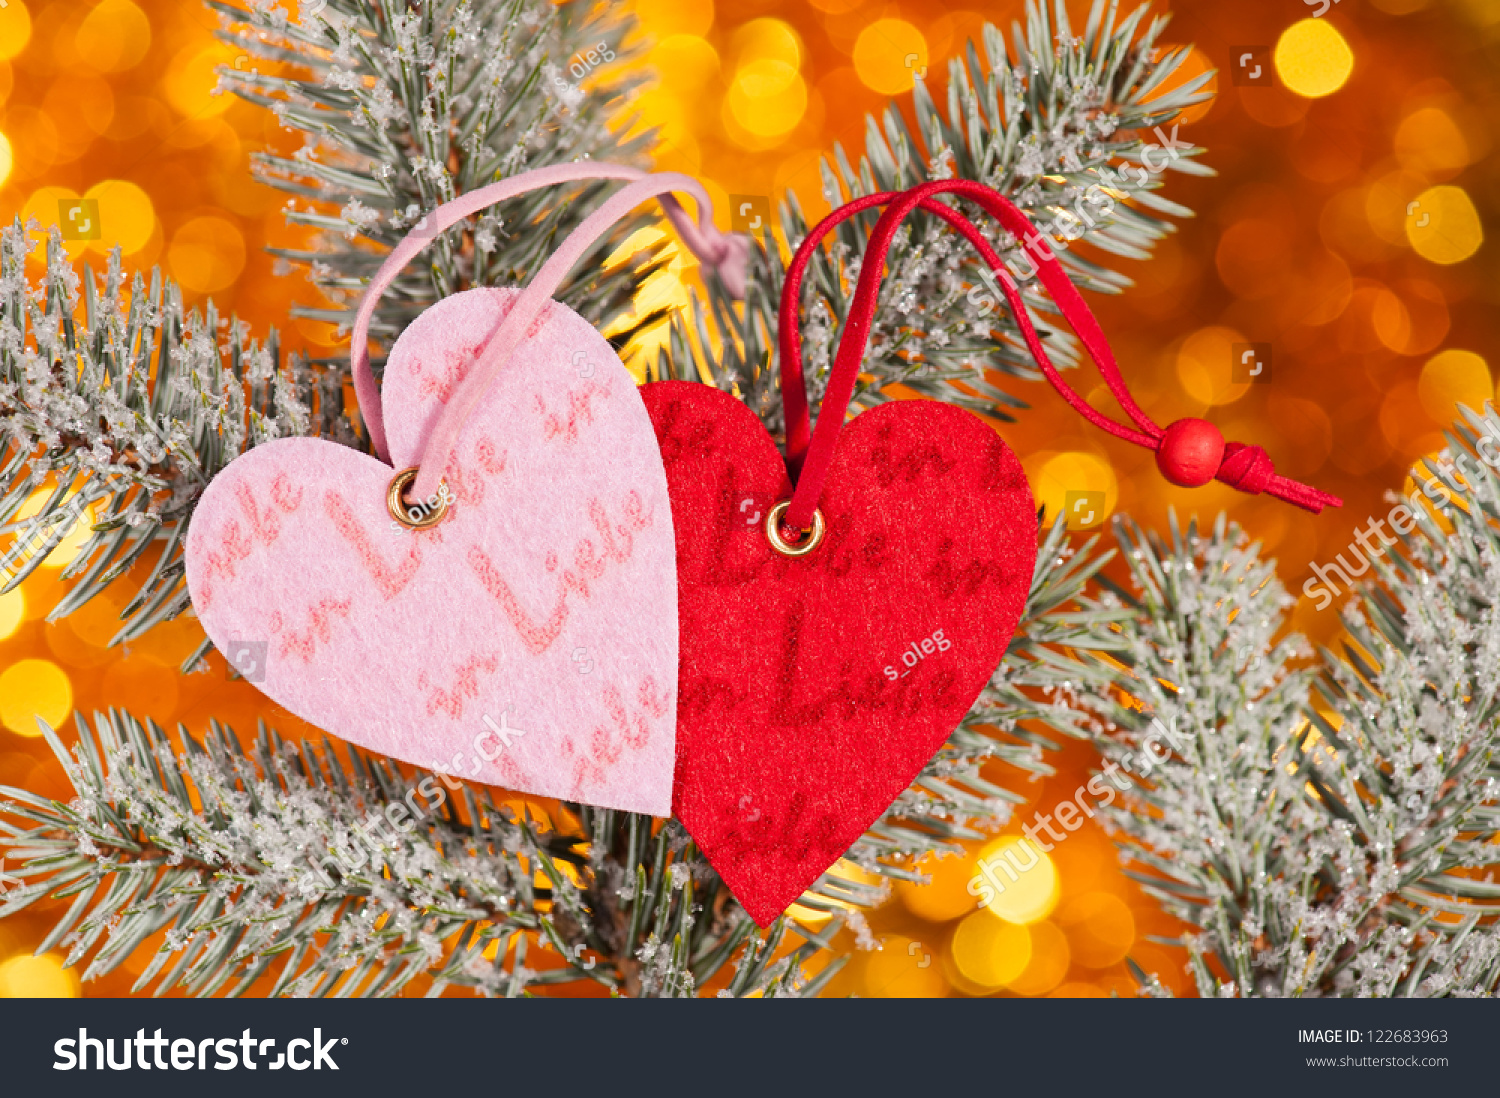 Two Hearts On Christmas Fir Tree Branch And Golden